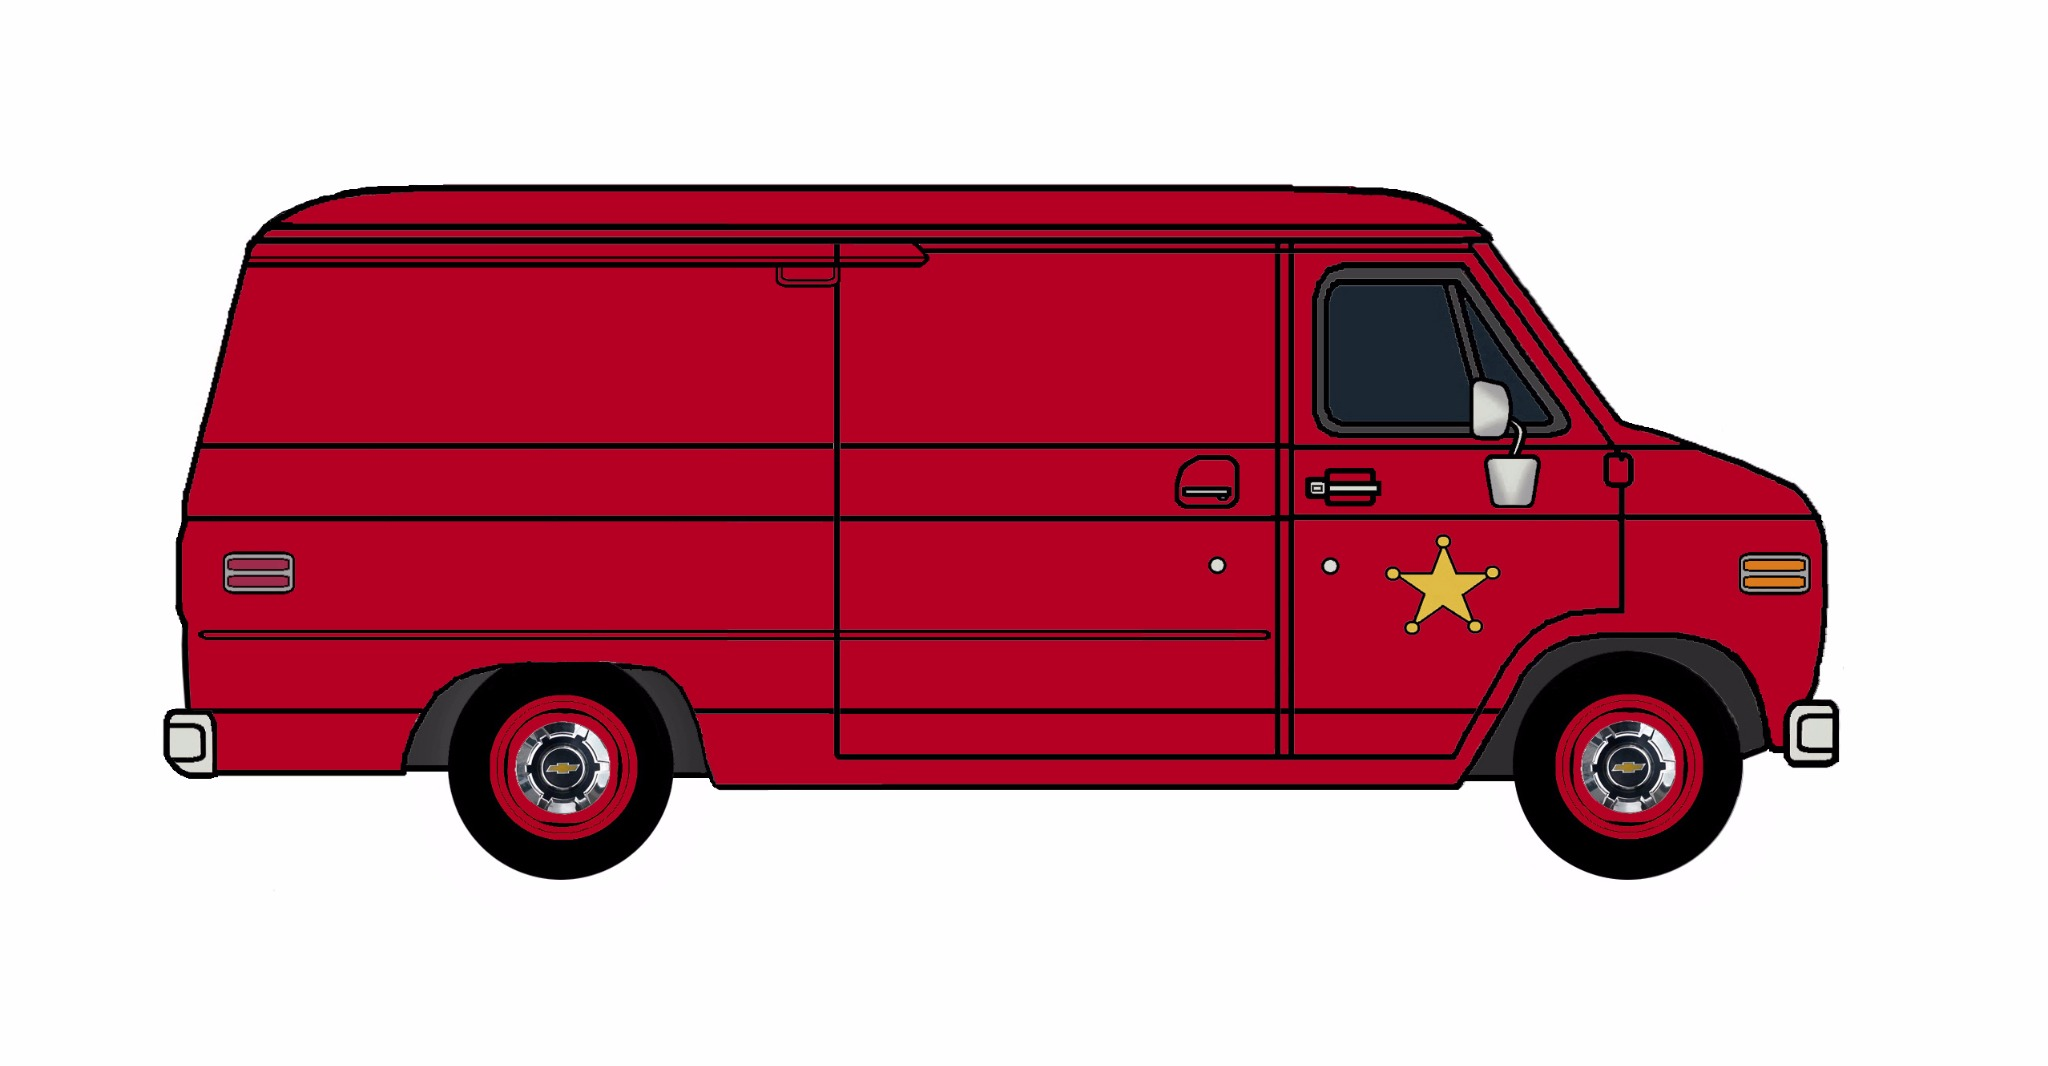 1977 Chevy G20 Police Van FIRE RED